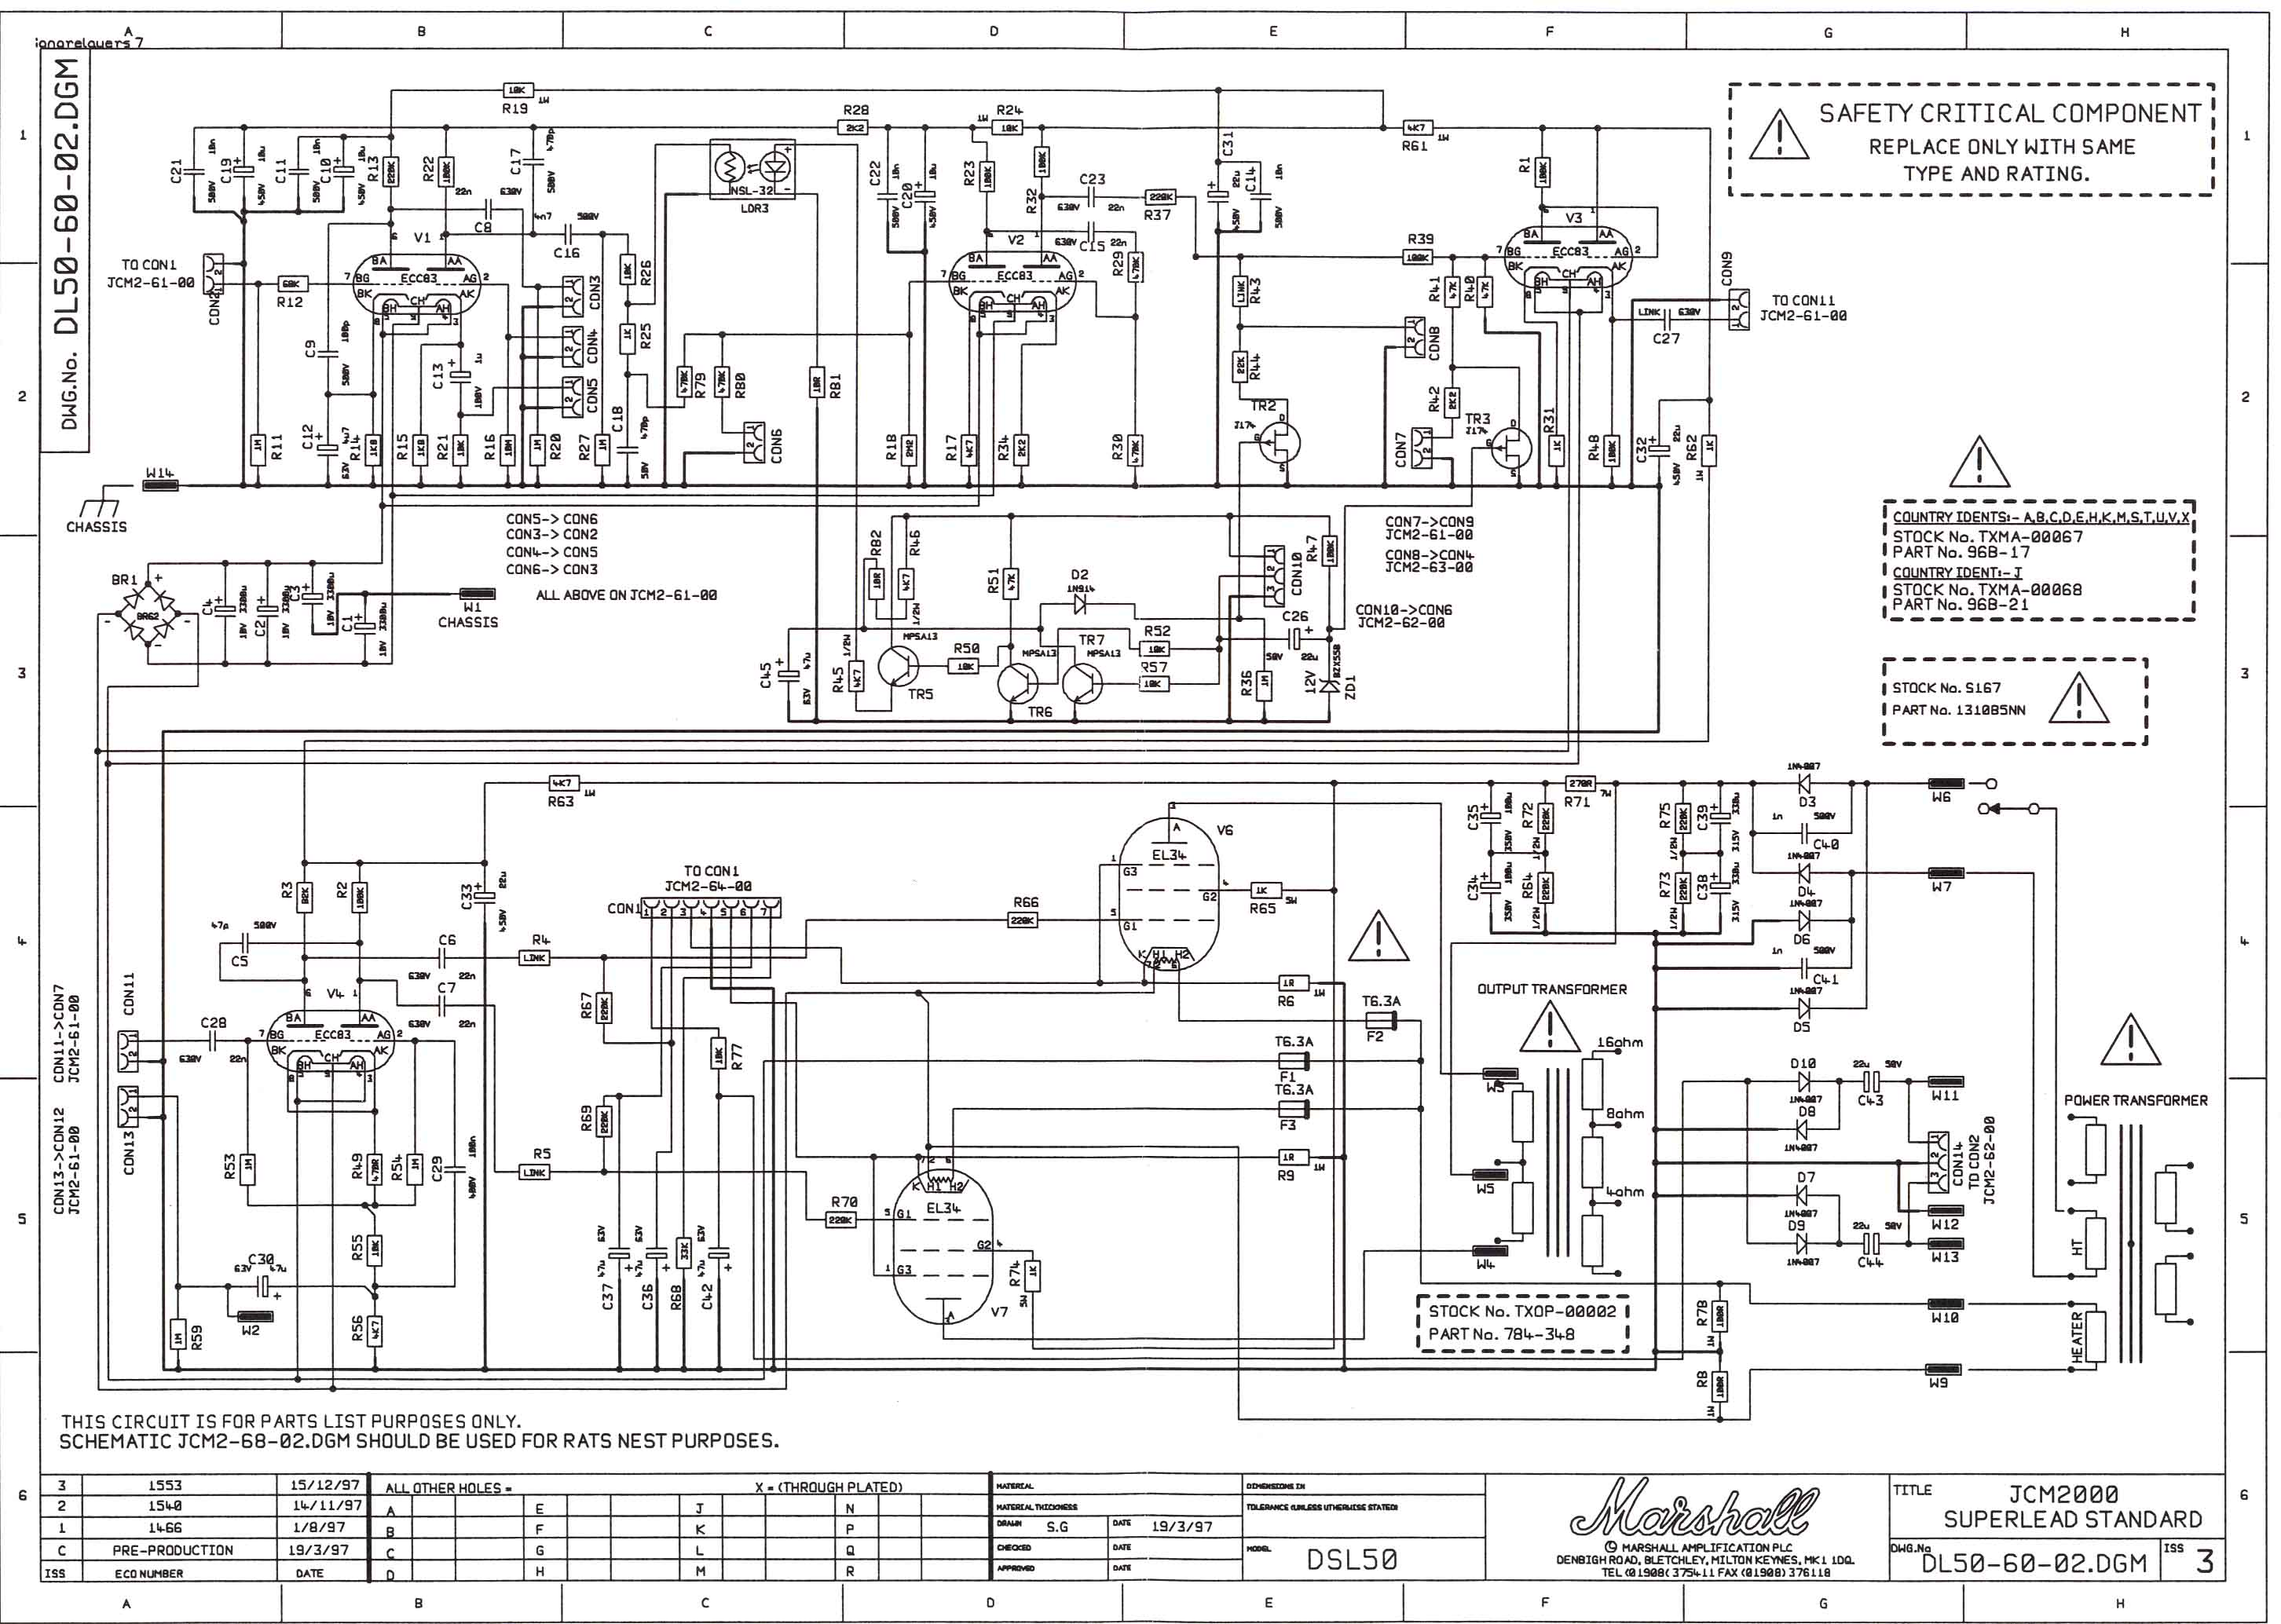 Marshall Amp Schematics - www.thetubestore.com on marshall valvestate amplifier schematic, marshall 2205 schematic, 1973 marshall schematic, marshall jtm 45 schematic, marshall jcm 2000 schematic, marshall 8100 schematic, marshall 8040 schematic, marshall 1962 schematic, marshall 75 reverb schematic, marshall jcm 900 schematic, marshall lead 100 mosfet schematic, marshall 1959 schematic, marshall 18w schematic,